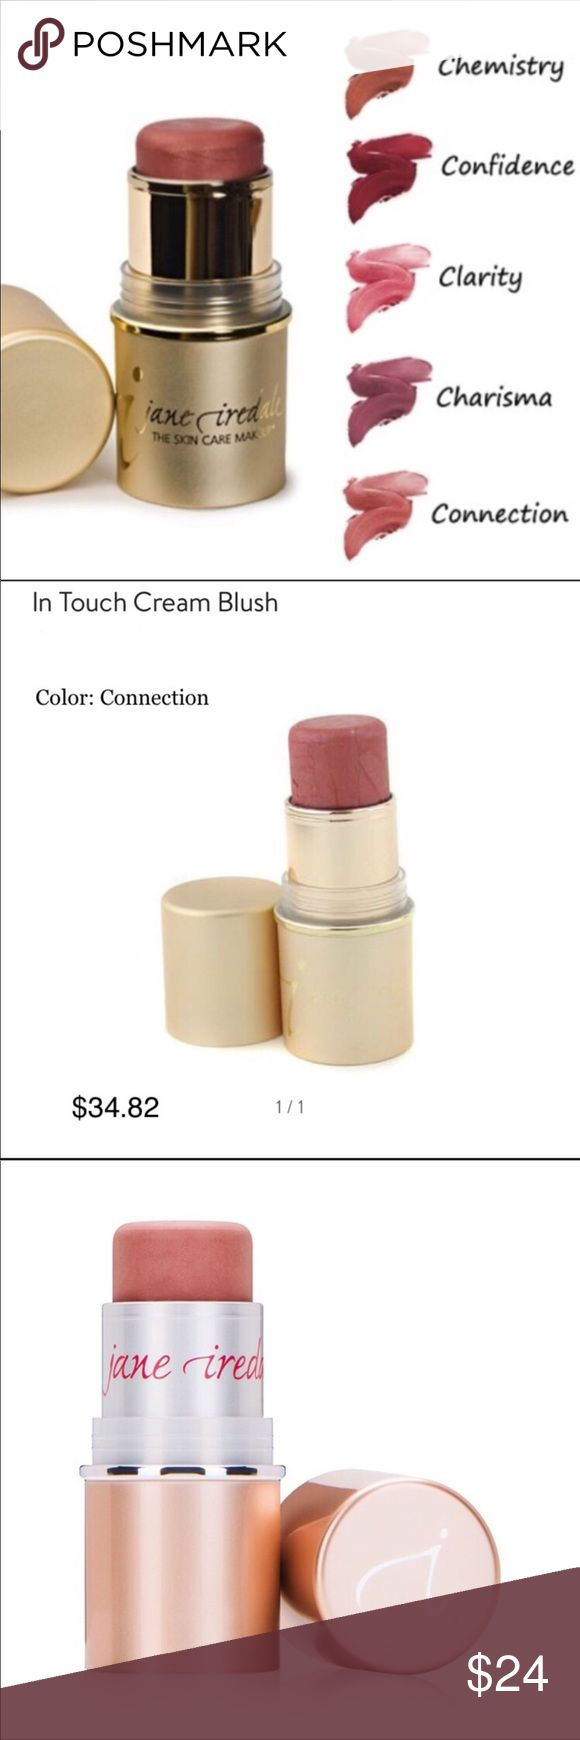 Jane Iredale In Touch Cream Blush ◾️New,Boxed! In Touch Cream Blush Sticks ◾️#1 World's Recommended Line by MD's & Estheticians! ▫️Jane Iredale cosmetics are famously known for their natural, healthy ingredients & are used in salons, spas, & esthetician practices! ▫️Recommended by the Skin Cancer       Foundation▫️SPF15▫️No Gluten ◾️#1 Best Selling Color! A perfect        peach/pink hue), not too dark or pale! ◾️💯Authentic. These are brand new & never tested.  🌀Price Firm on these. Bundle…